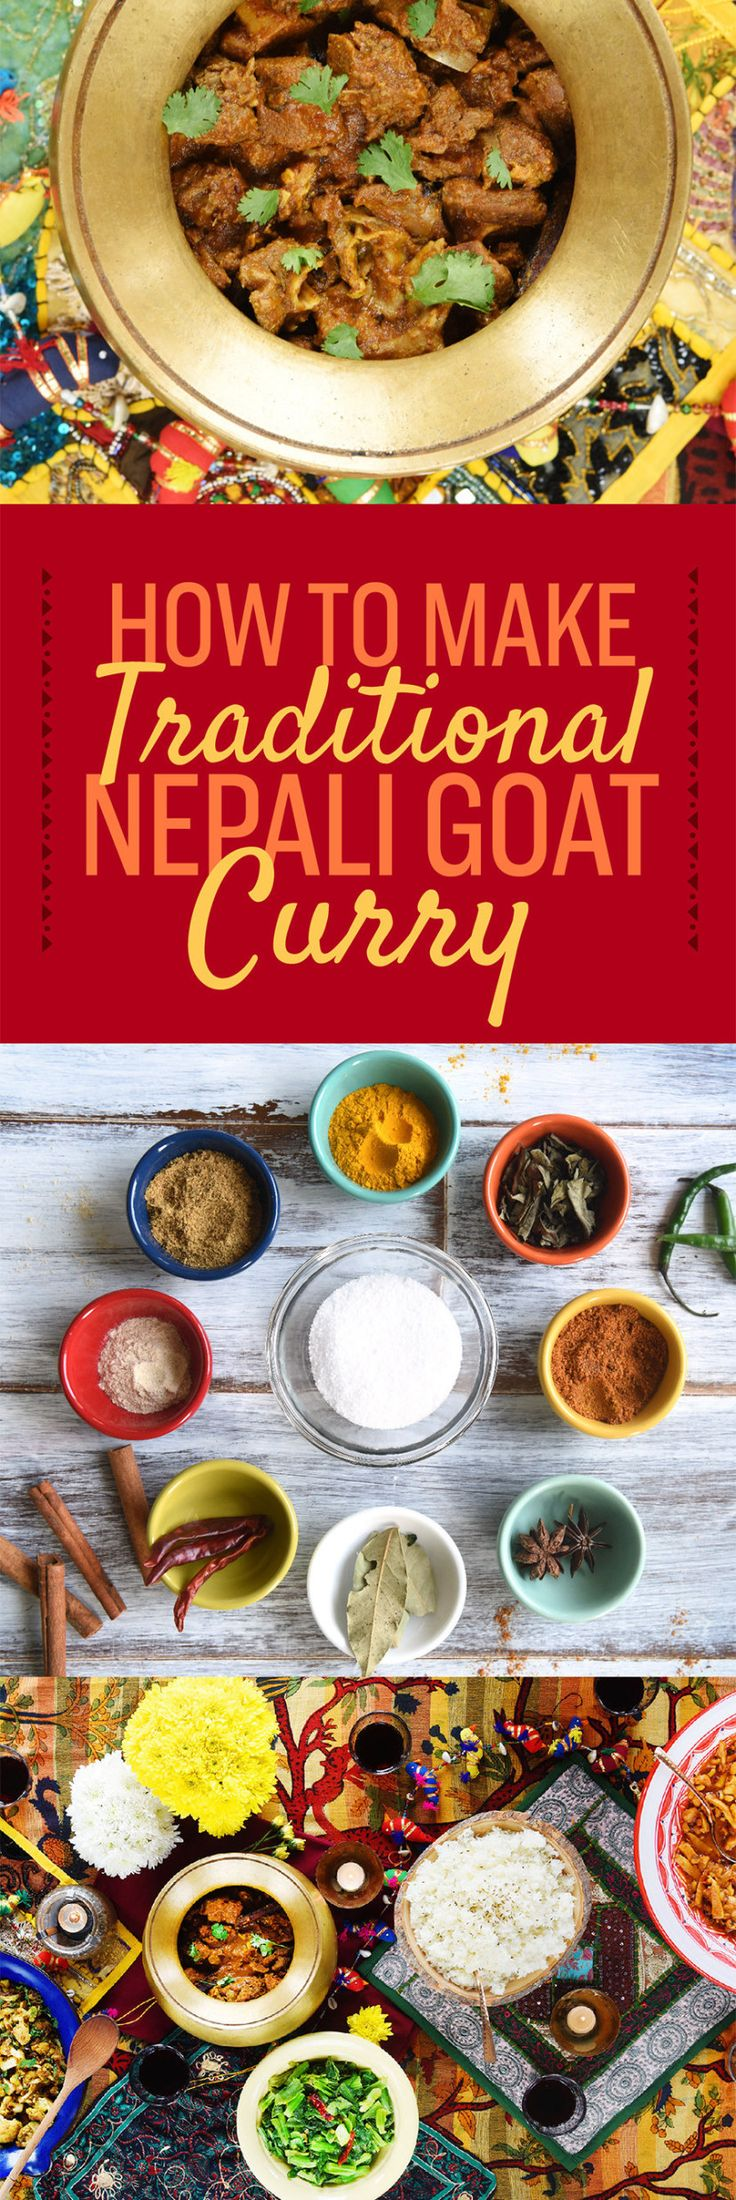 best ideas about my mother essay about my mother how to make proper i goat curry